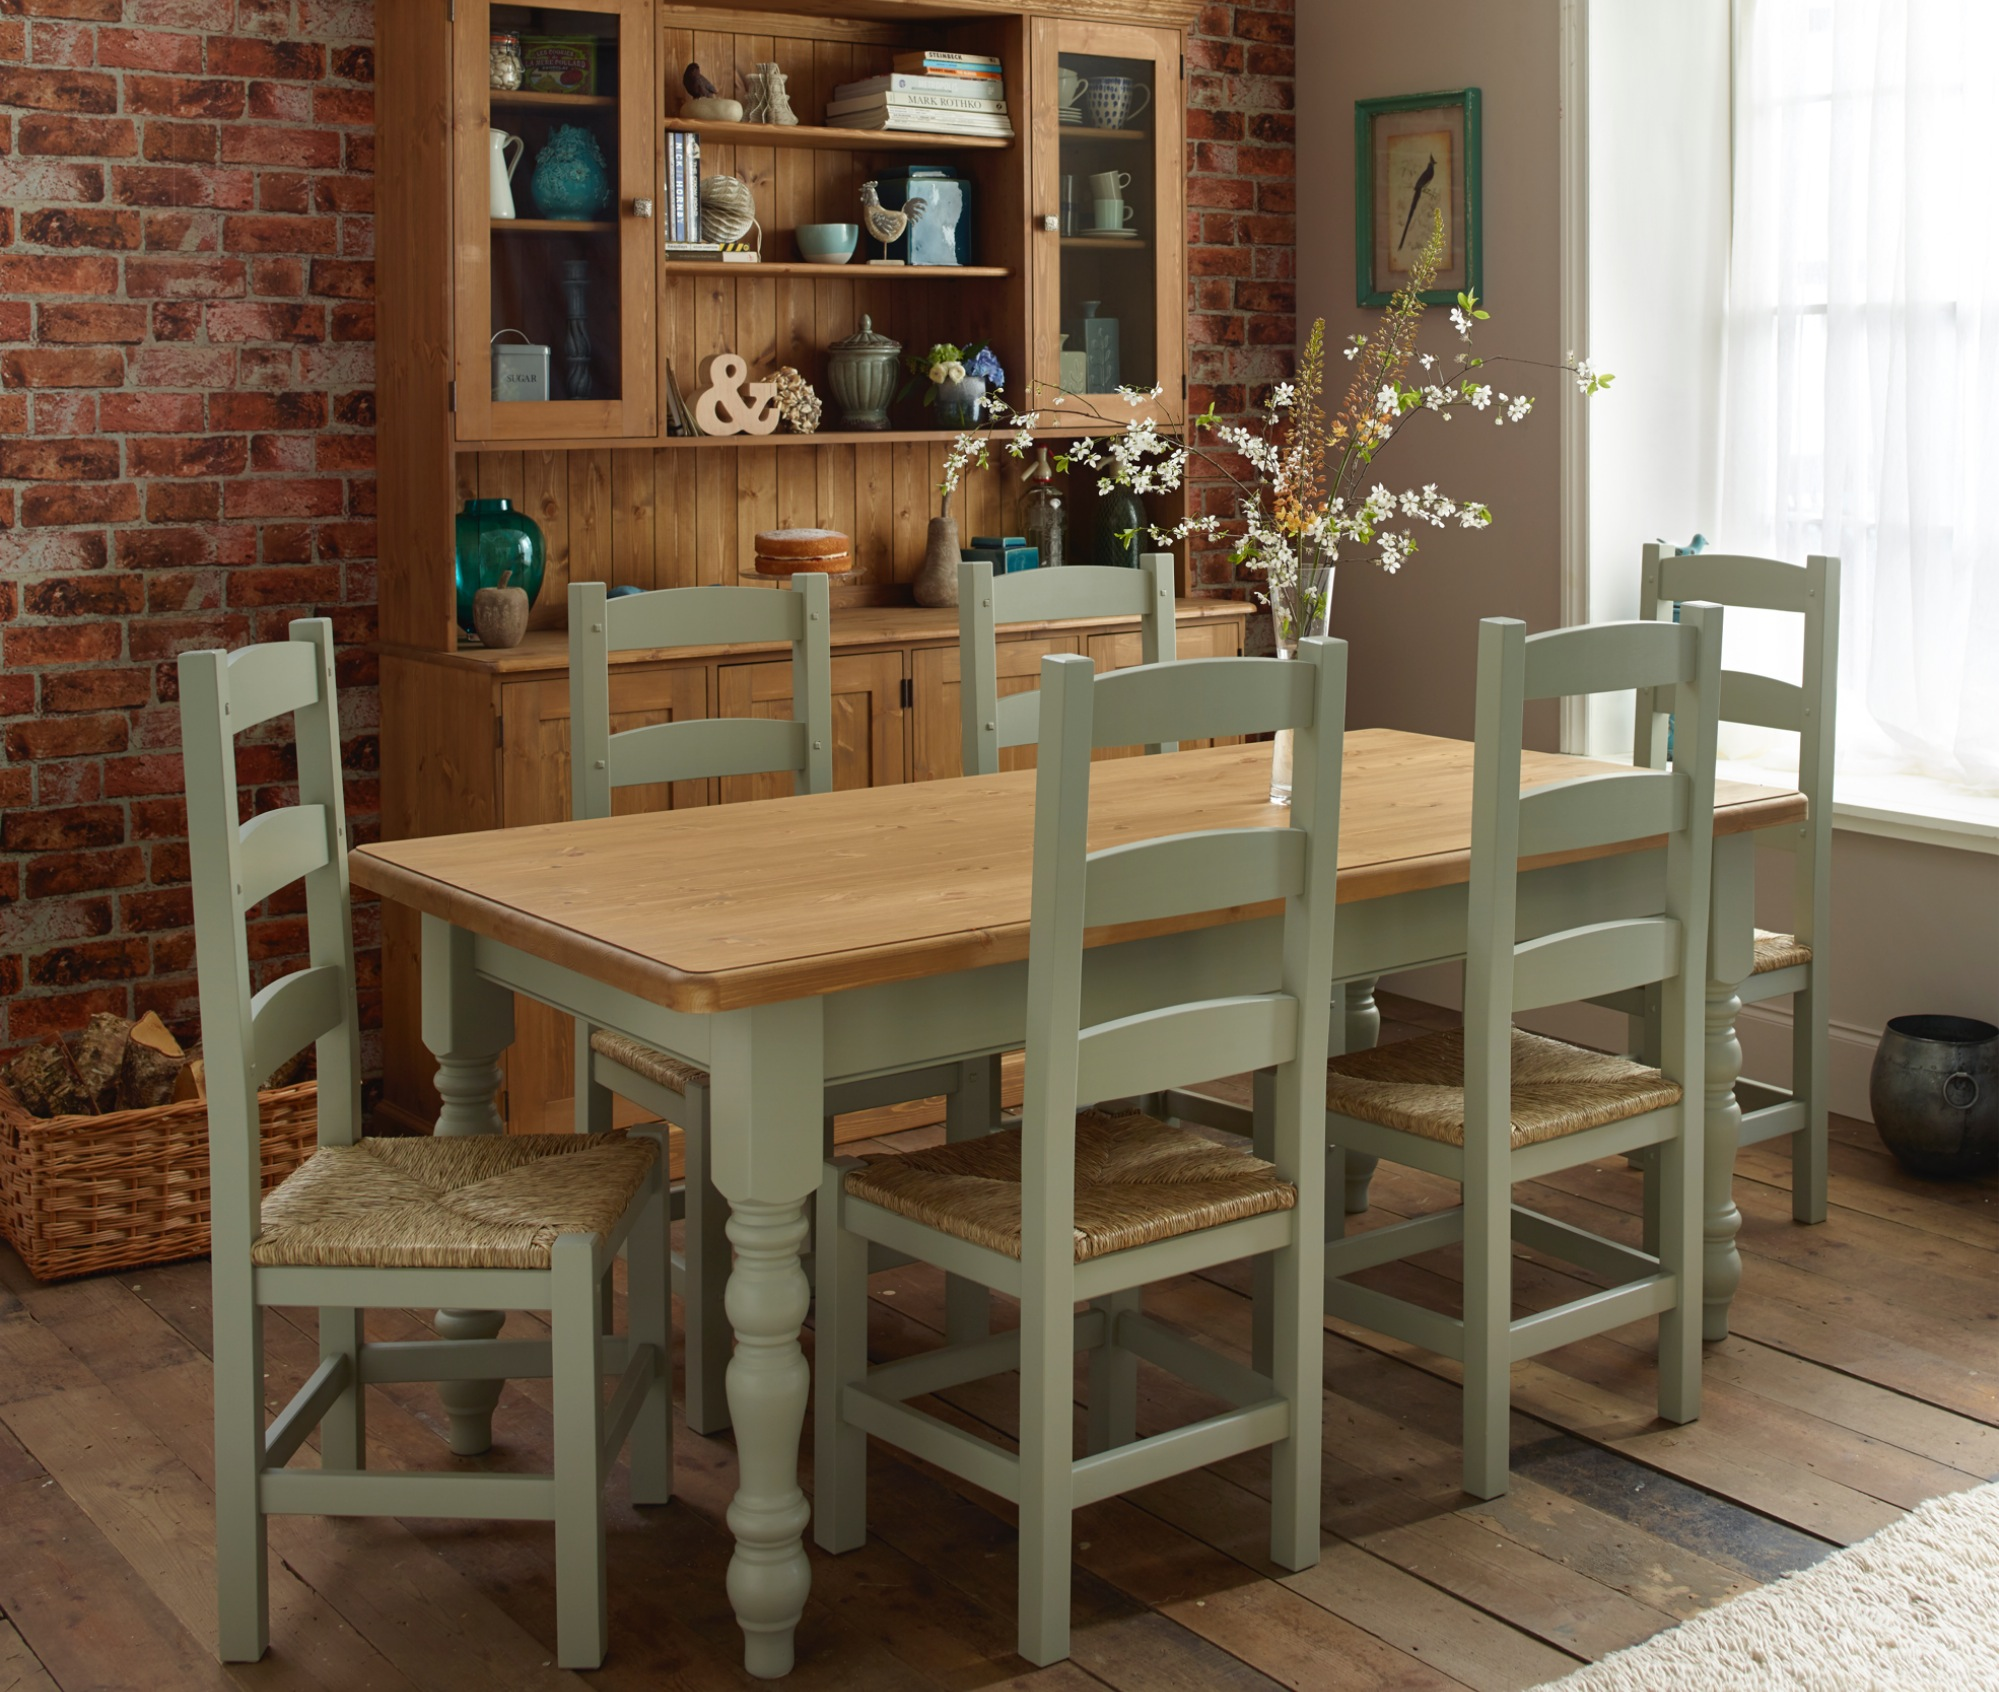 Village Green Dining Tables & Painted Table And Chairs | Sevenstonesinc.com